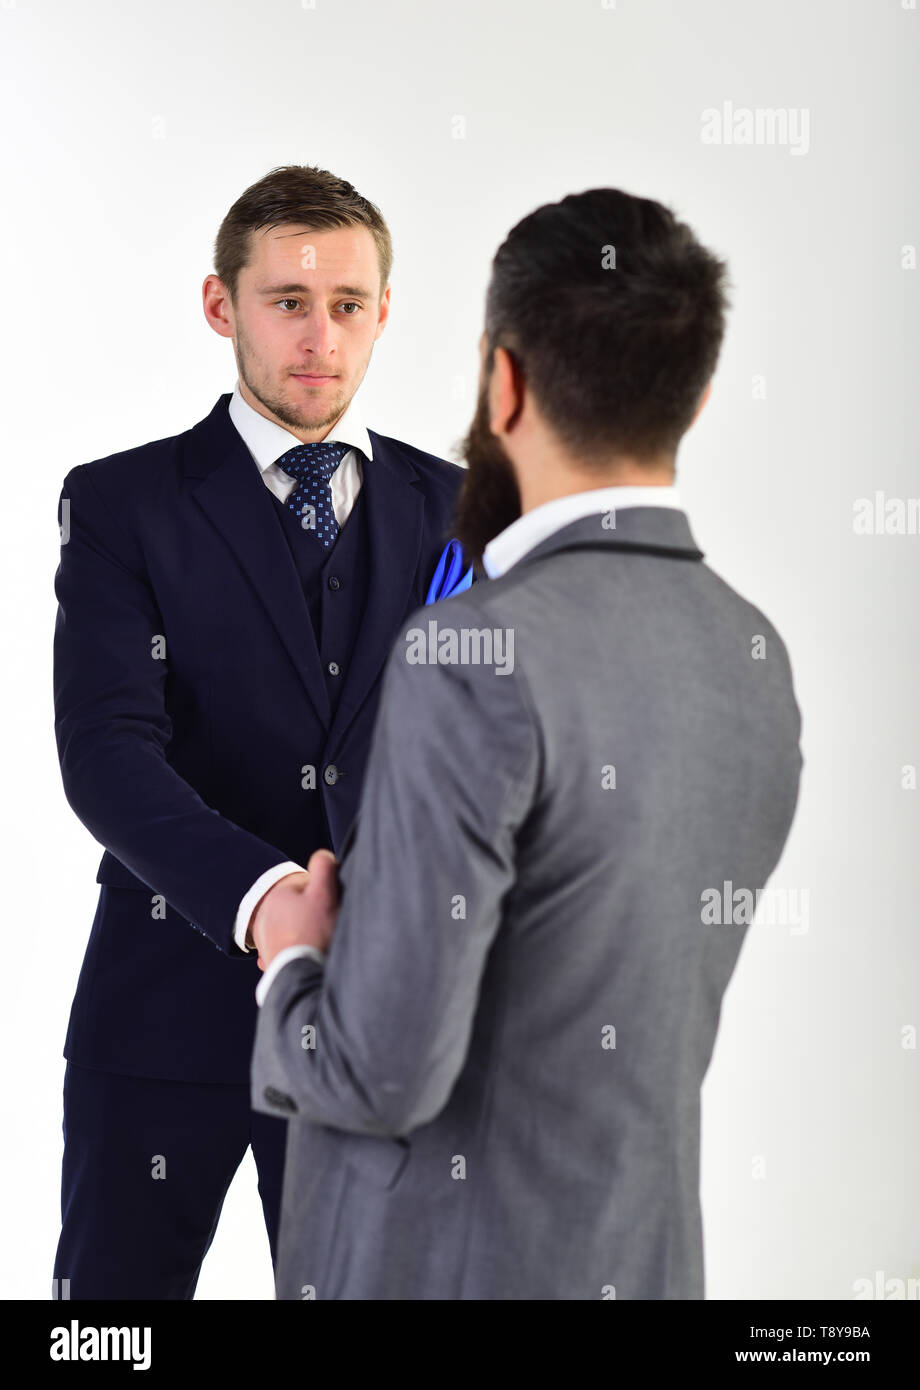 Handshake concept. Businessmen shaking hands, successful deal or acquaintance. Businessmen, business partners meeting, white background. Business - Stock Image